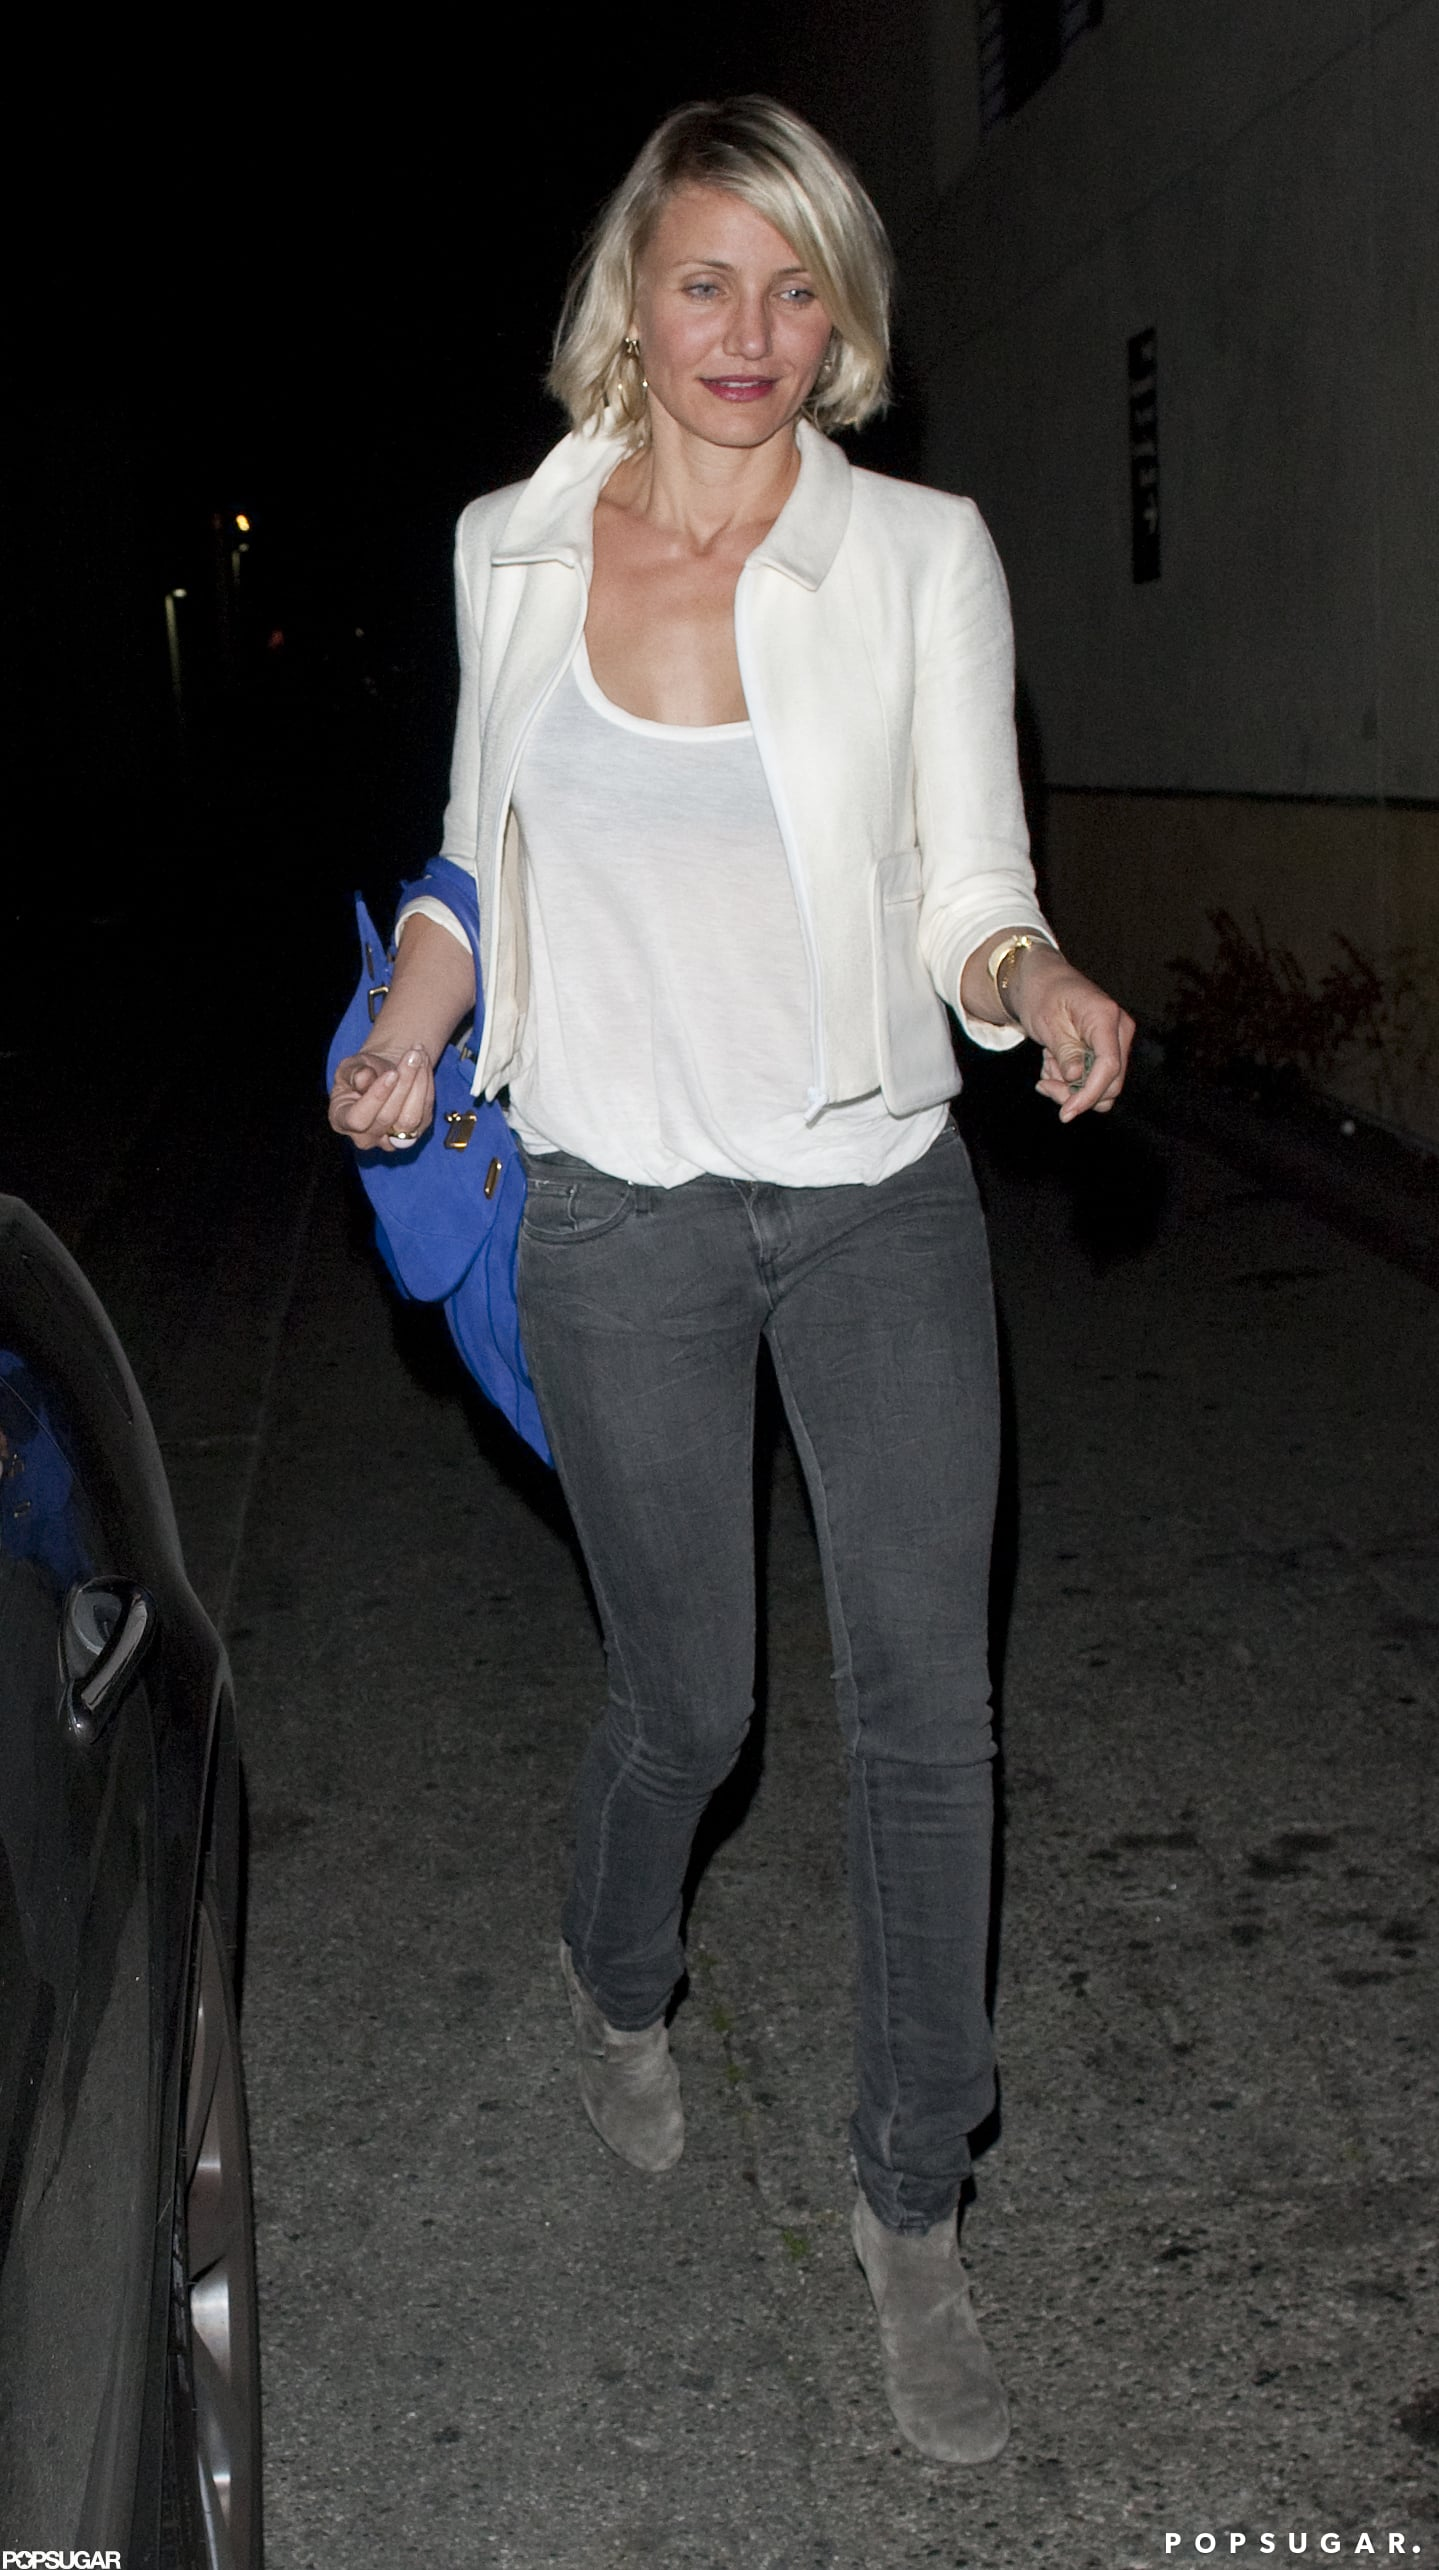 Cameron Diaz in a white blazer.